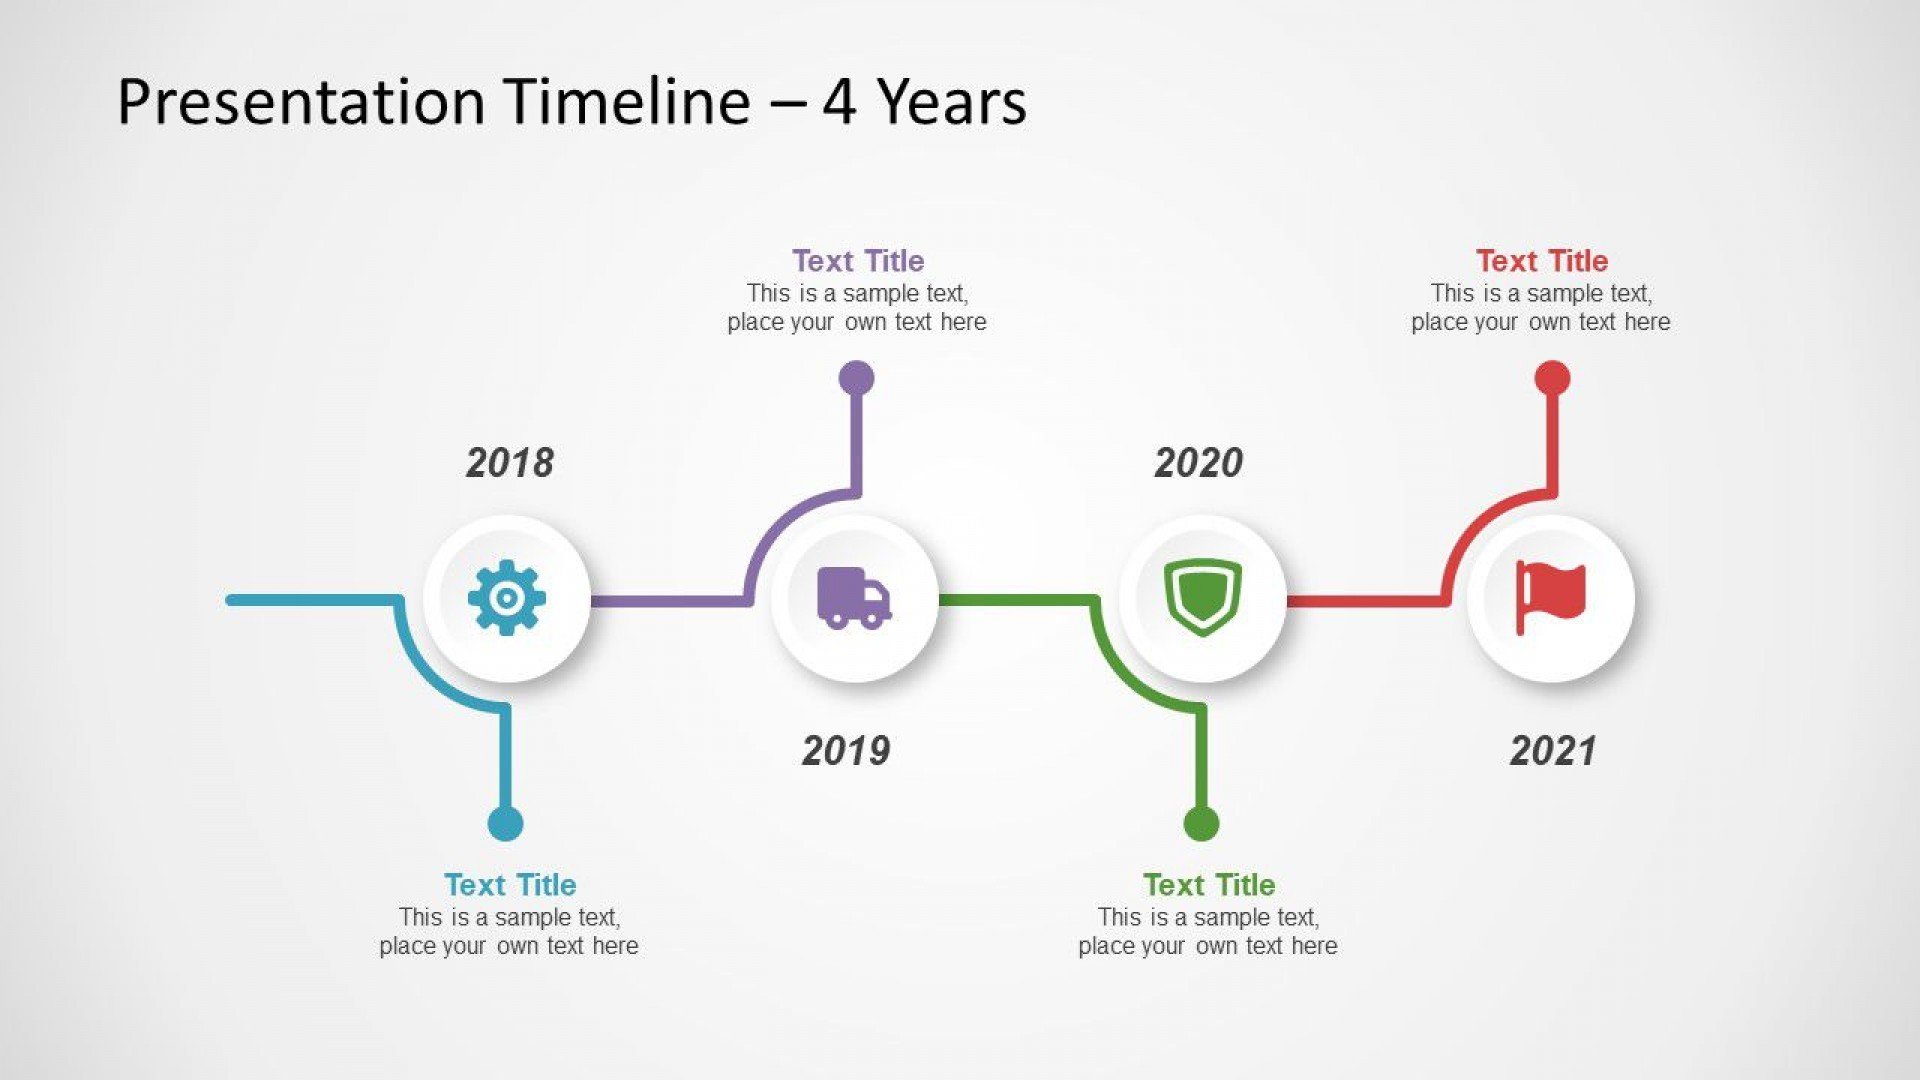 006 Remarkable Powerpoint Timeline Template Free Download Example  Project History1920